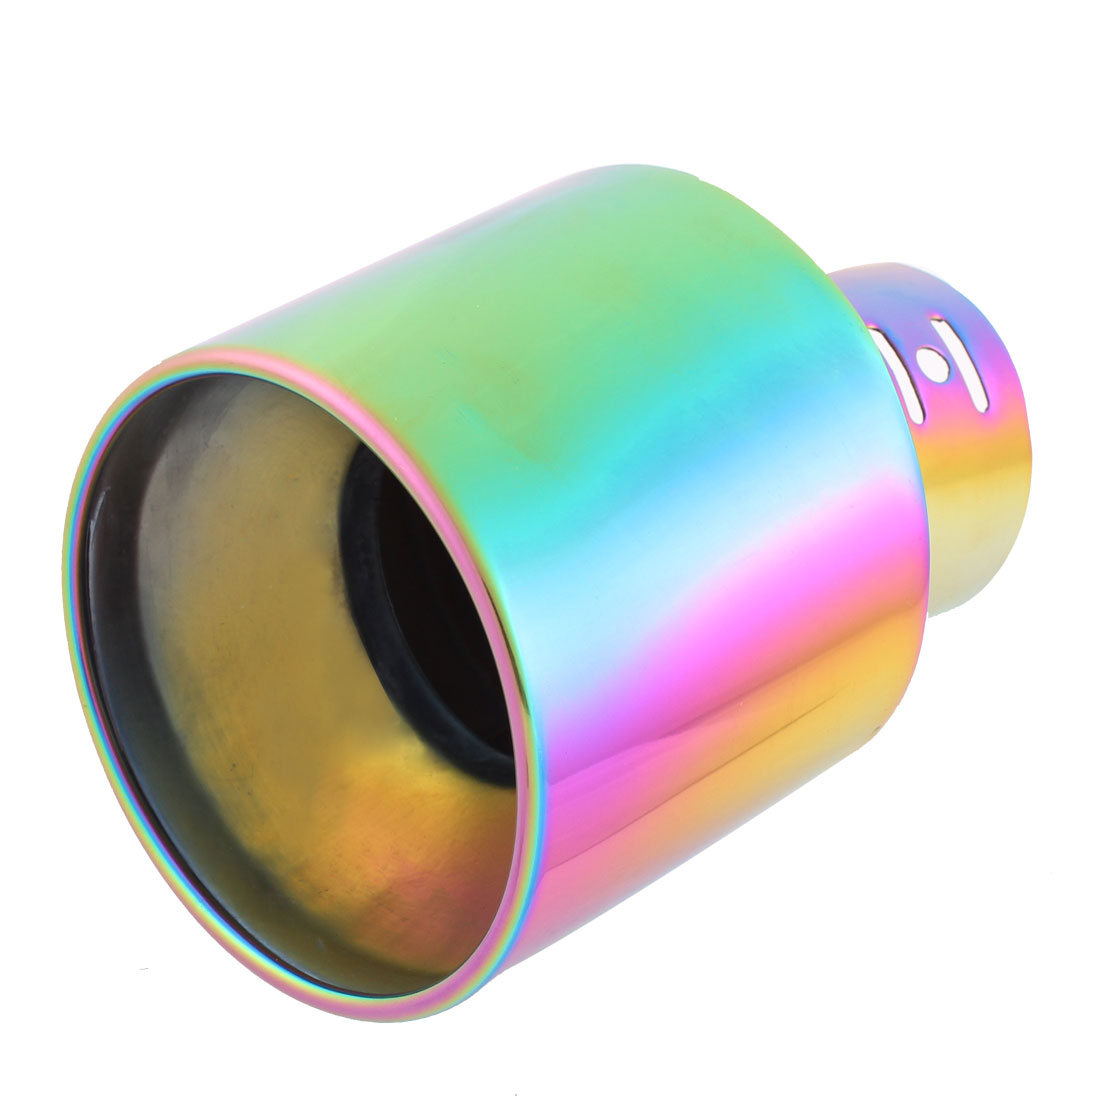 64mm Inlet Dia Colorful Stainless Steel Exhaust Tip Pipe Muffler for Auto Car